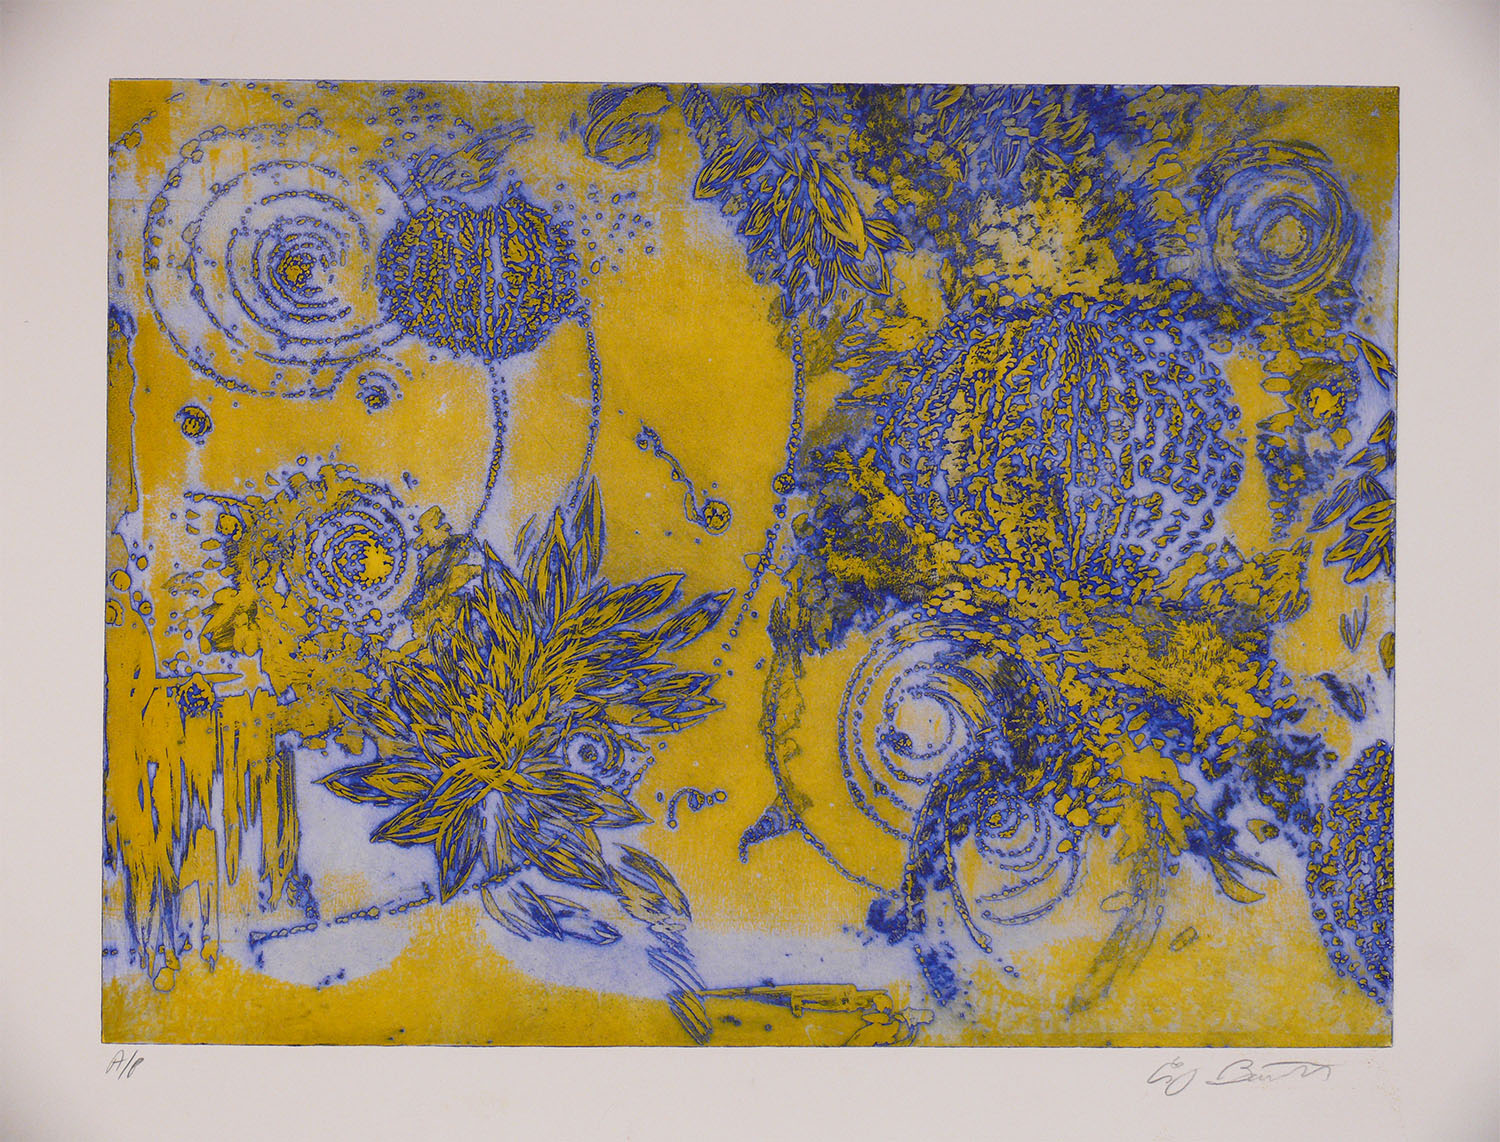 Microcosms, Yellow Blue, 2006, Viscosity Etching, 22 x 30